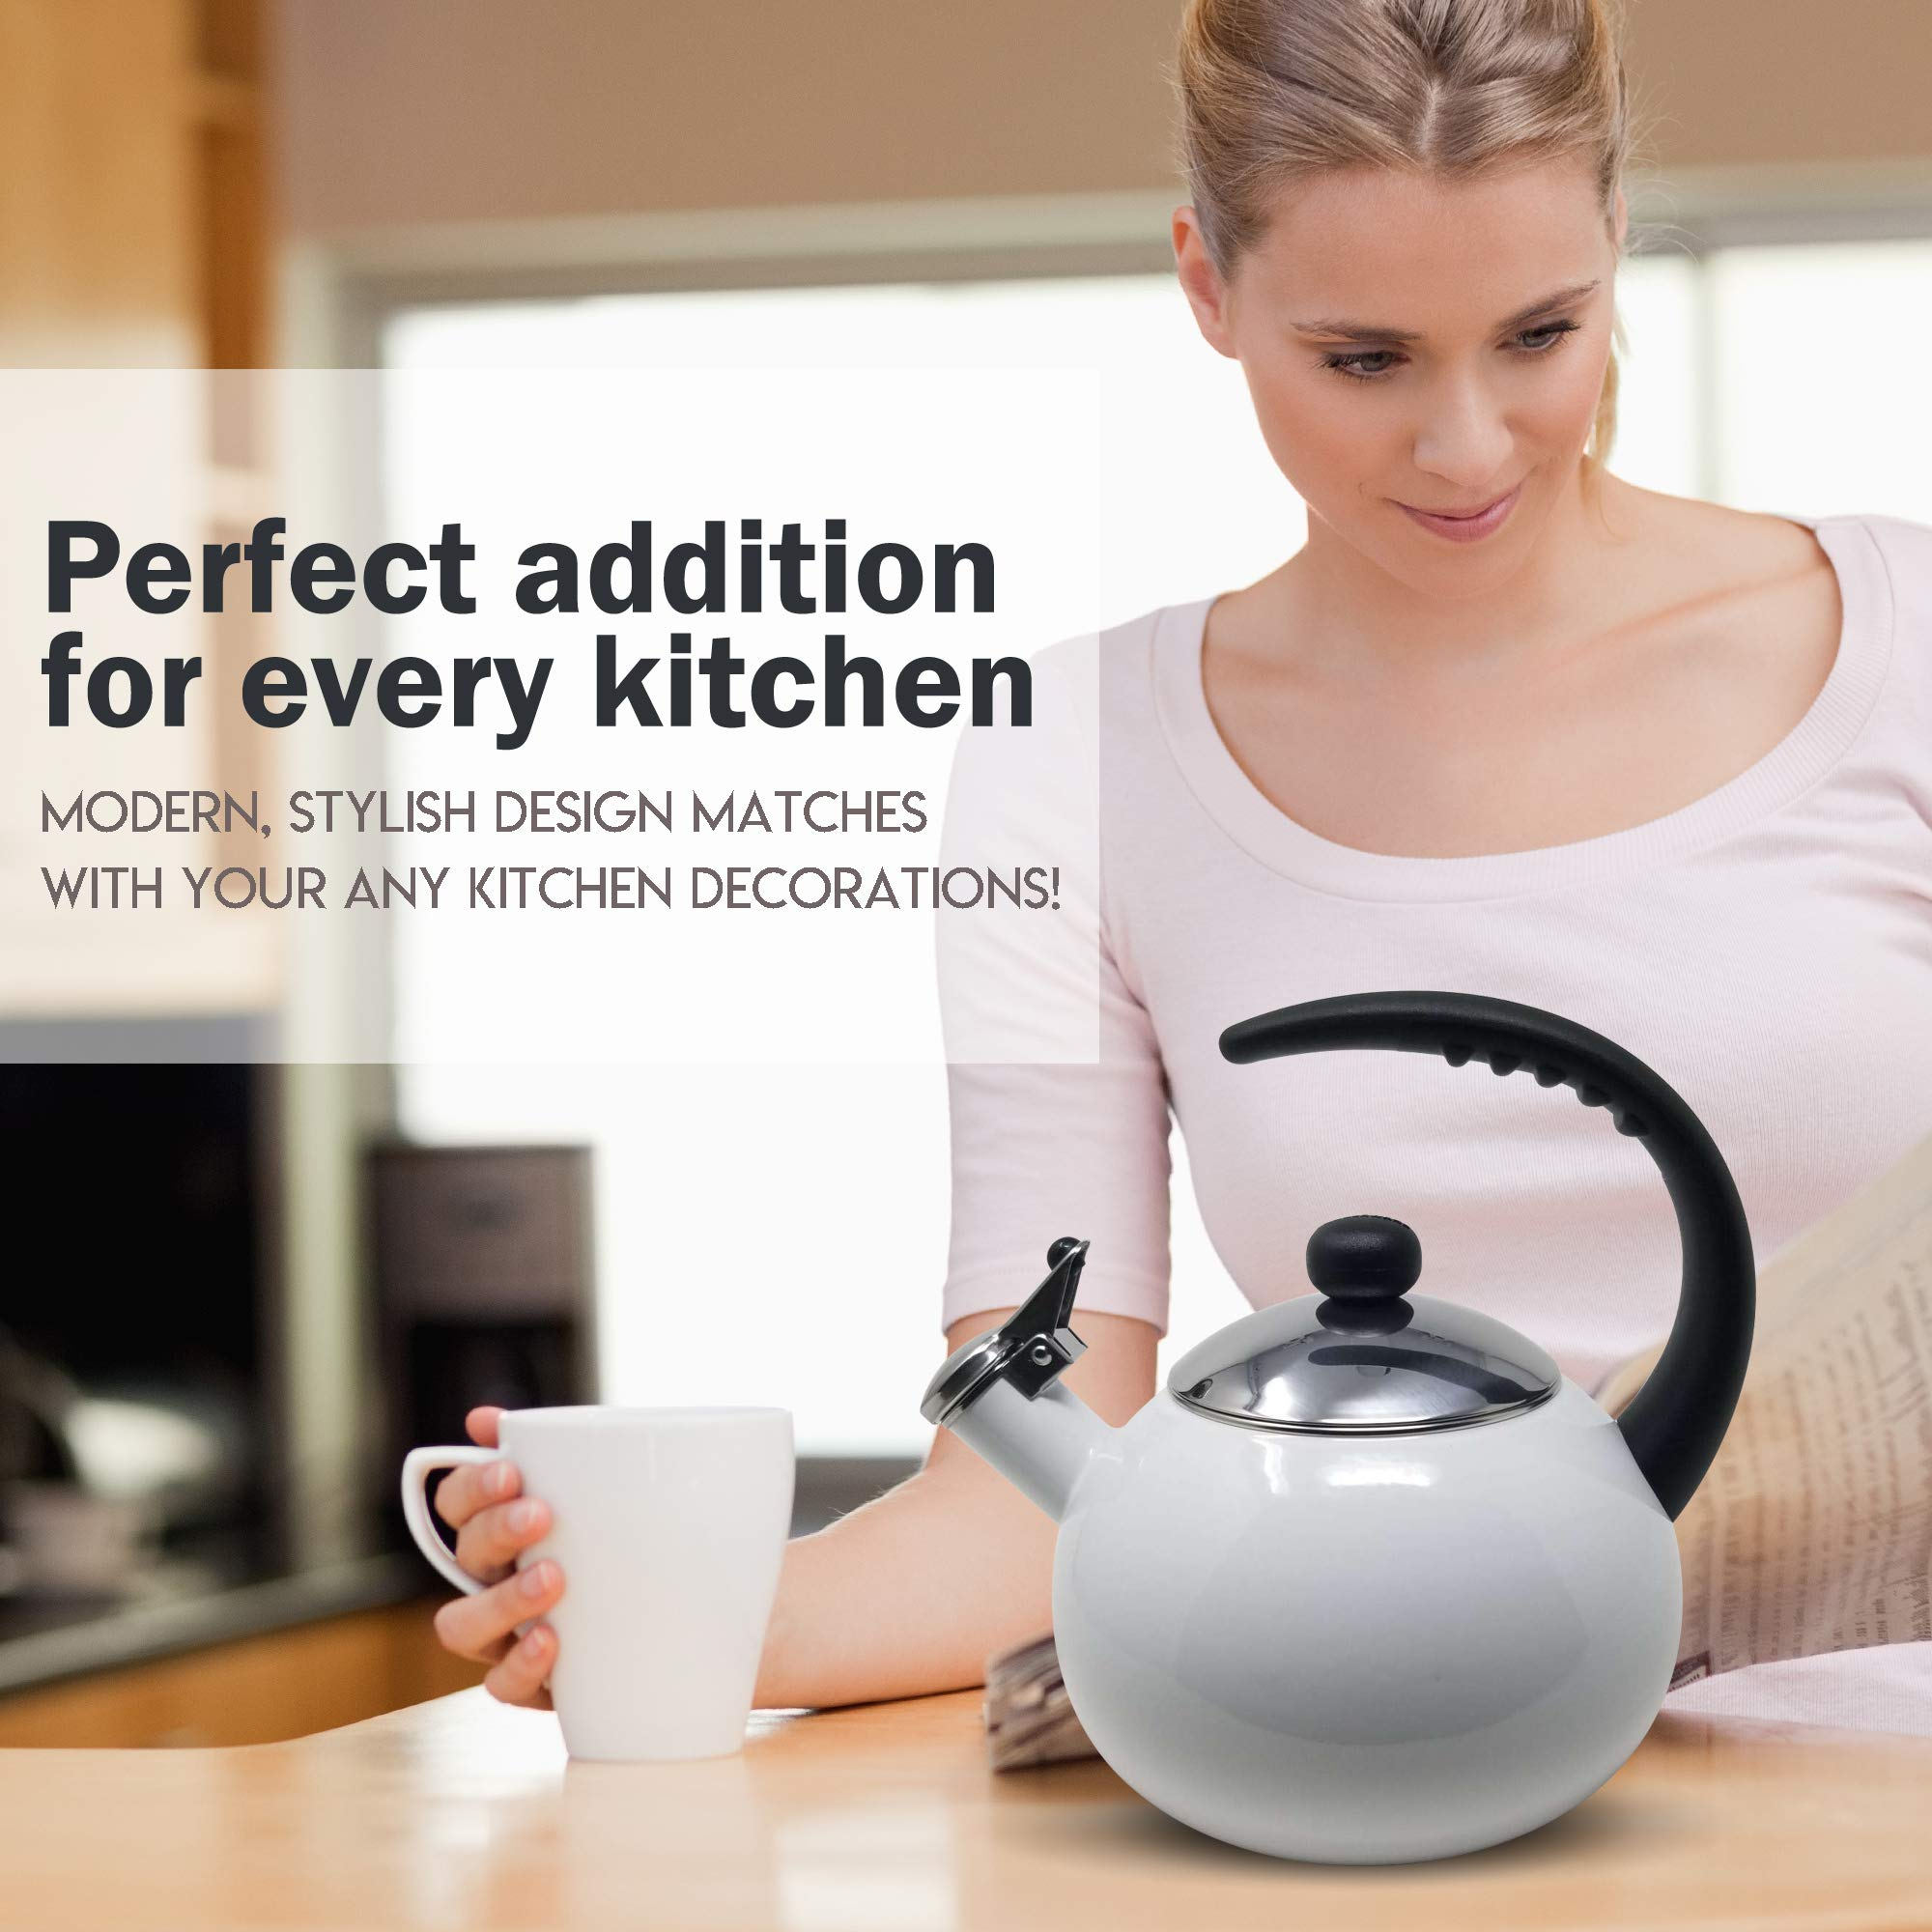 Farberware Luna White Porcelain Enameled Food Grade 18/8 Stainless Steel Soft Whistle Anti- Hot and Anti-Rust TEA KETTLE with Soft Grip Handle Flip Up Spout Heavy Gauge STOVETOP POT 2 QT. by Alfay (Image #7)